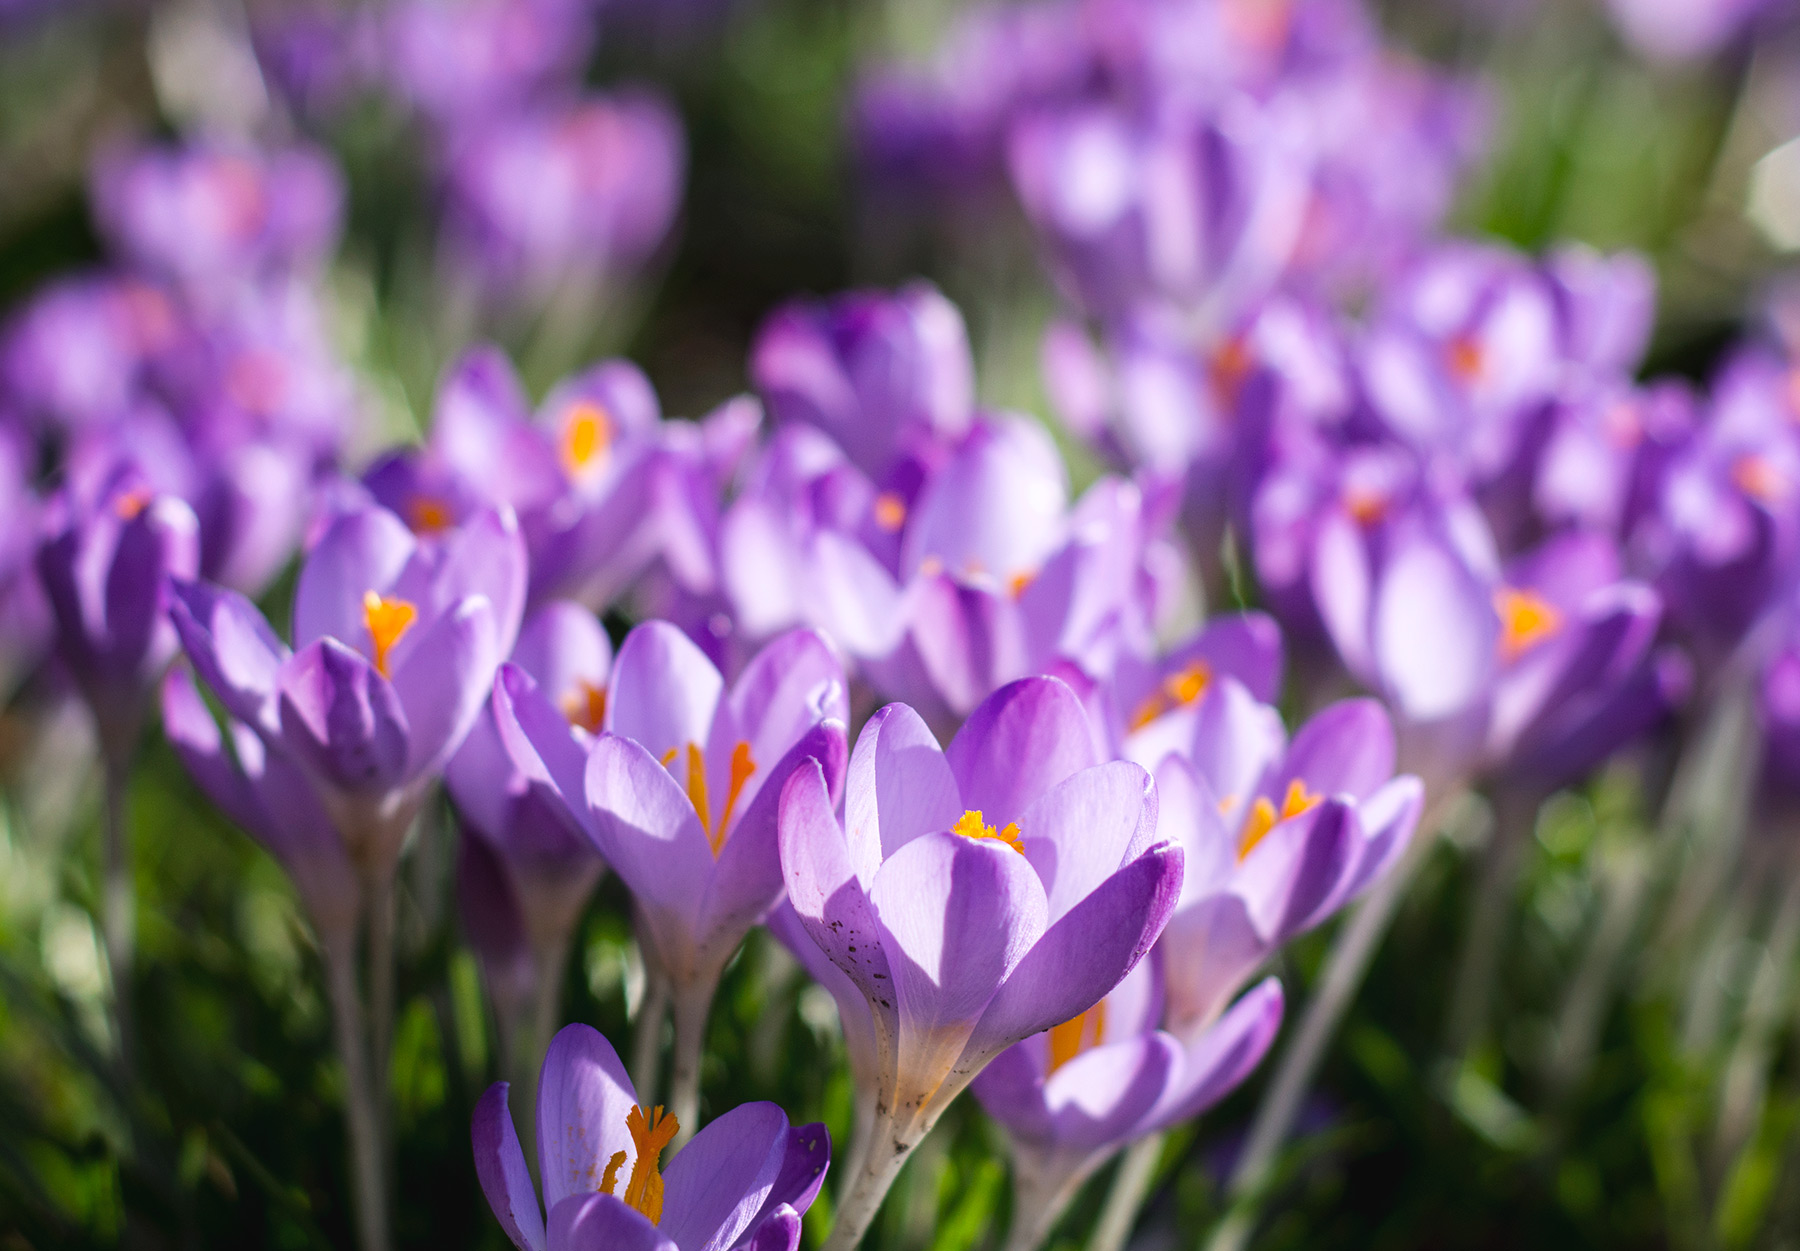 Closeup of crocus